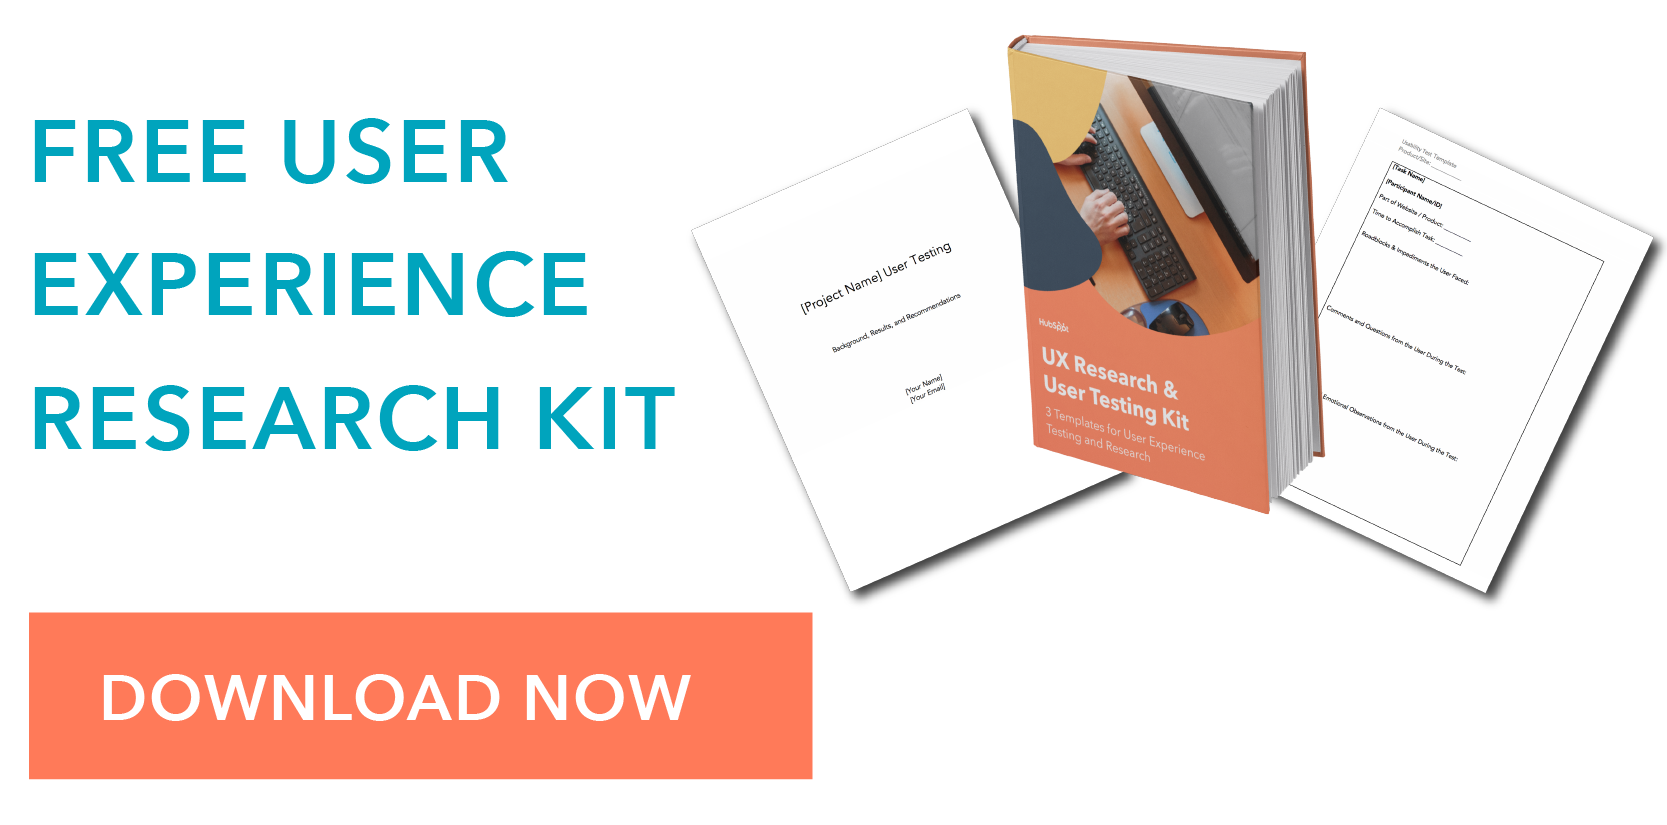 ux research kit